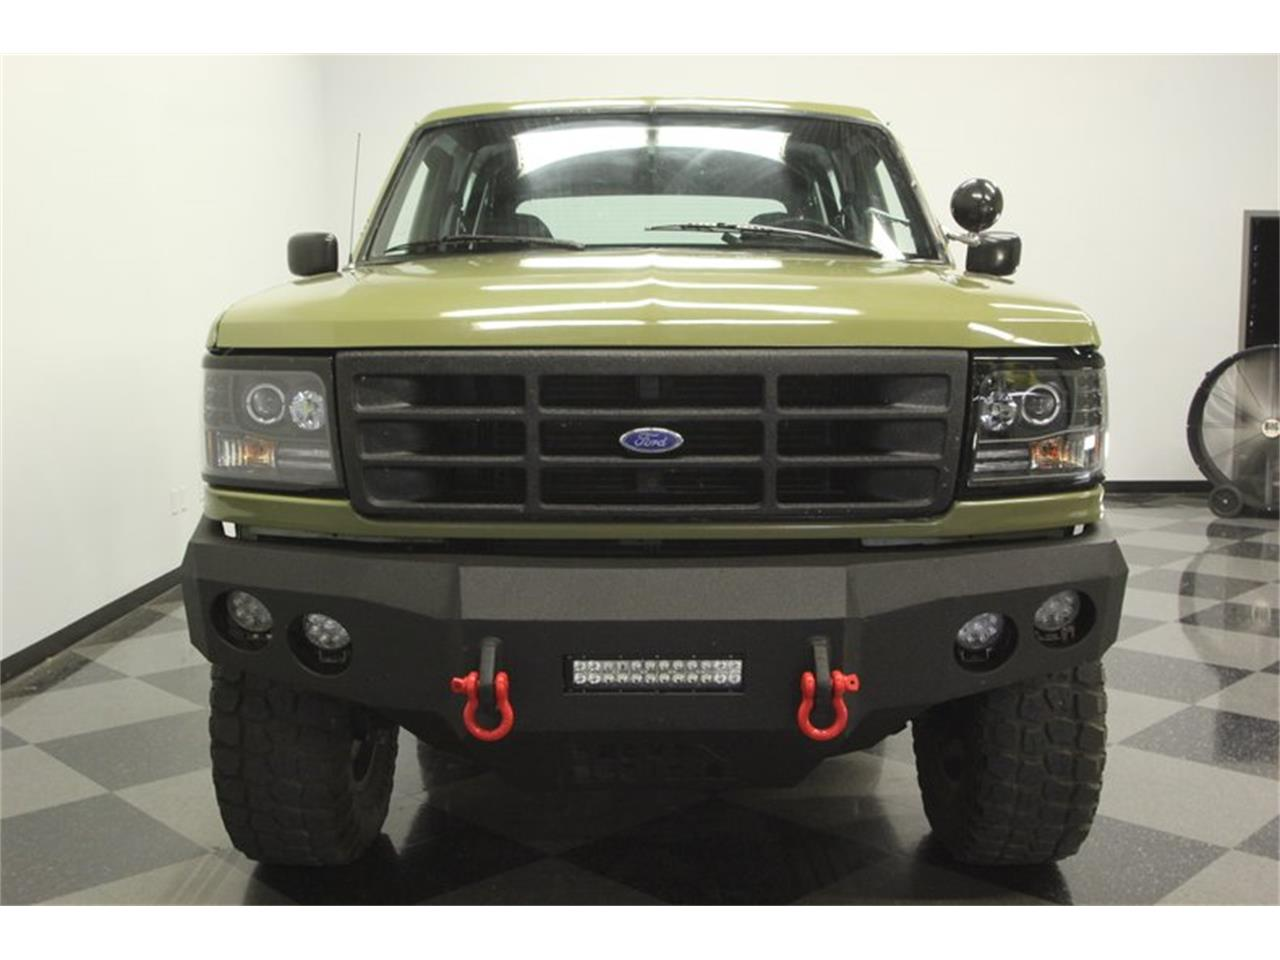 1996 Ford Bronco for sale in Lutz, FL – photo 18